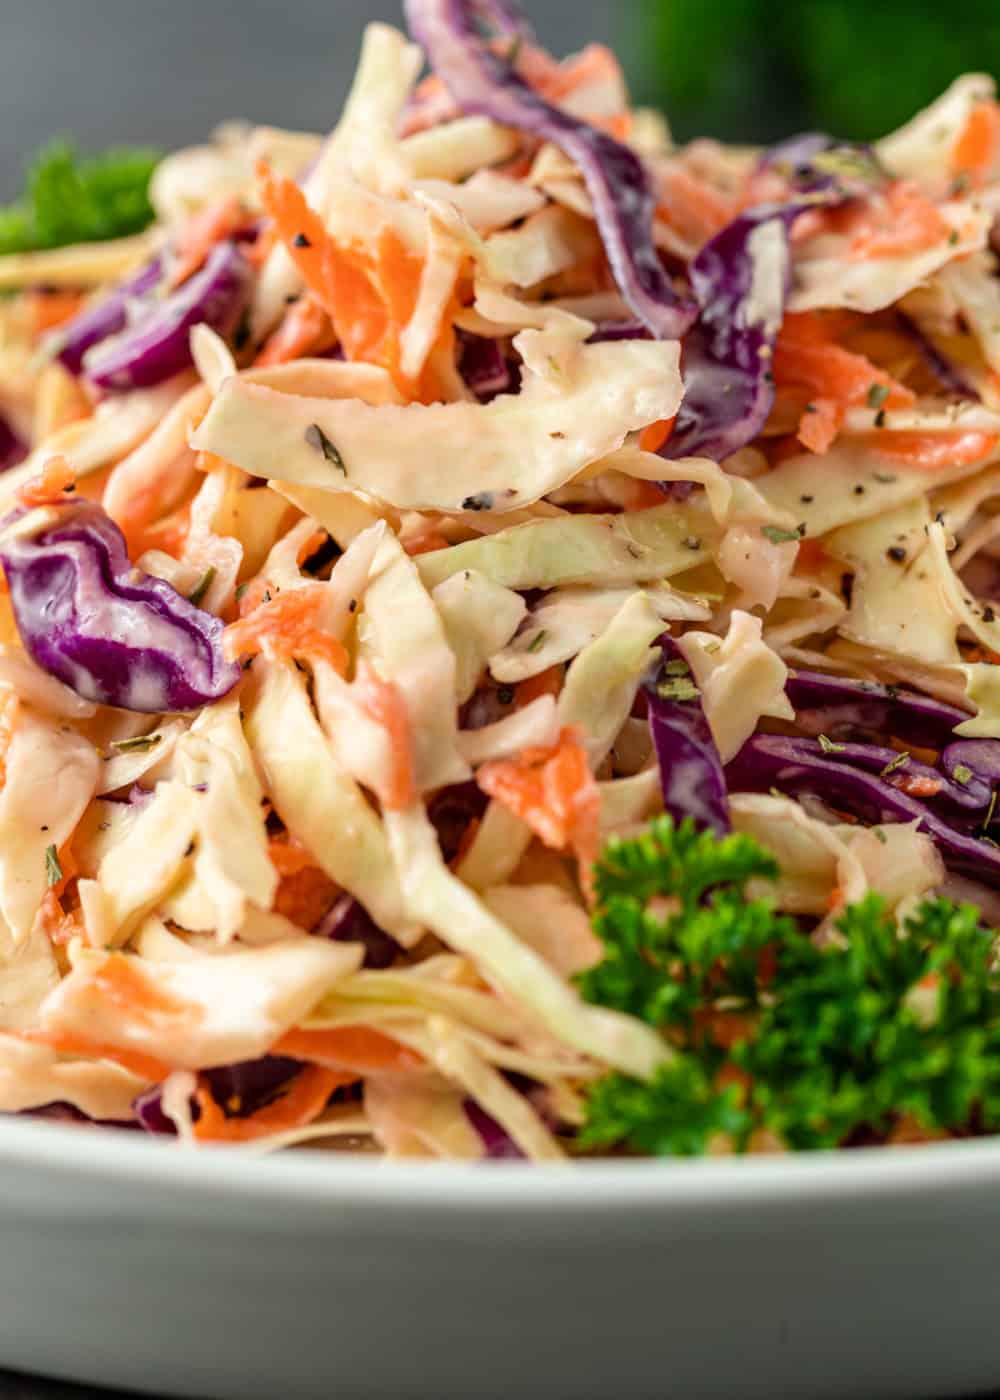 close up photo: bowl of coleslaw for pulled pork